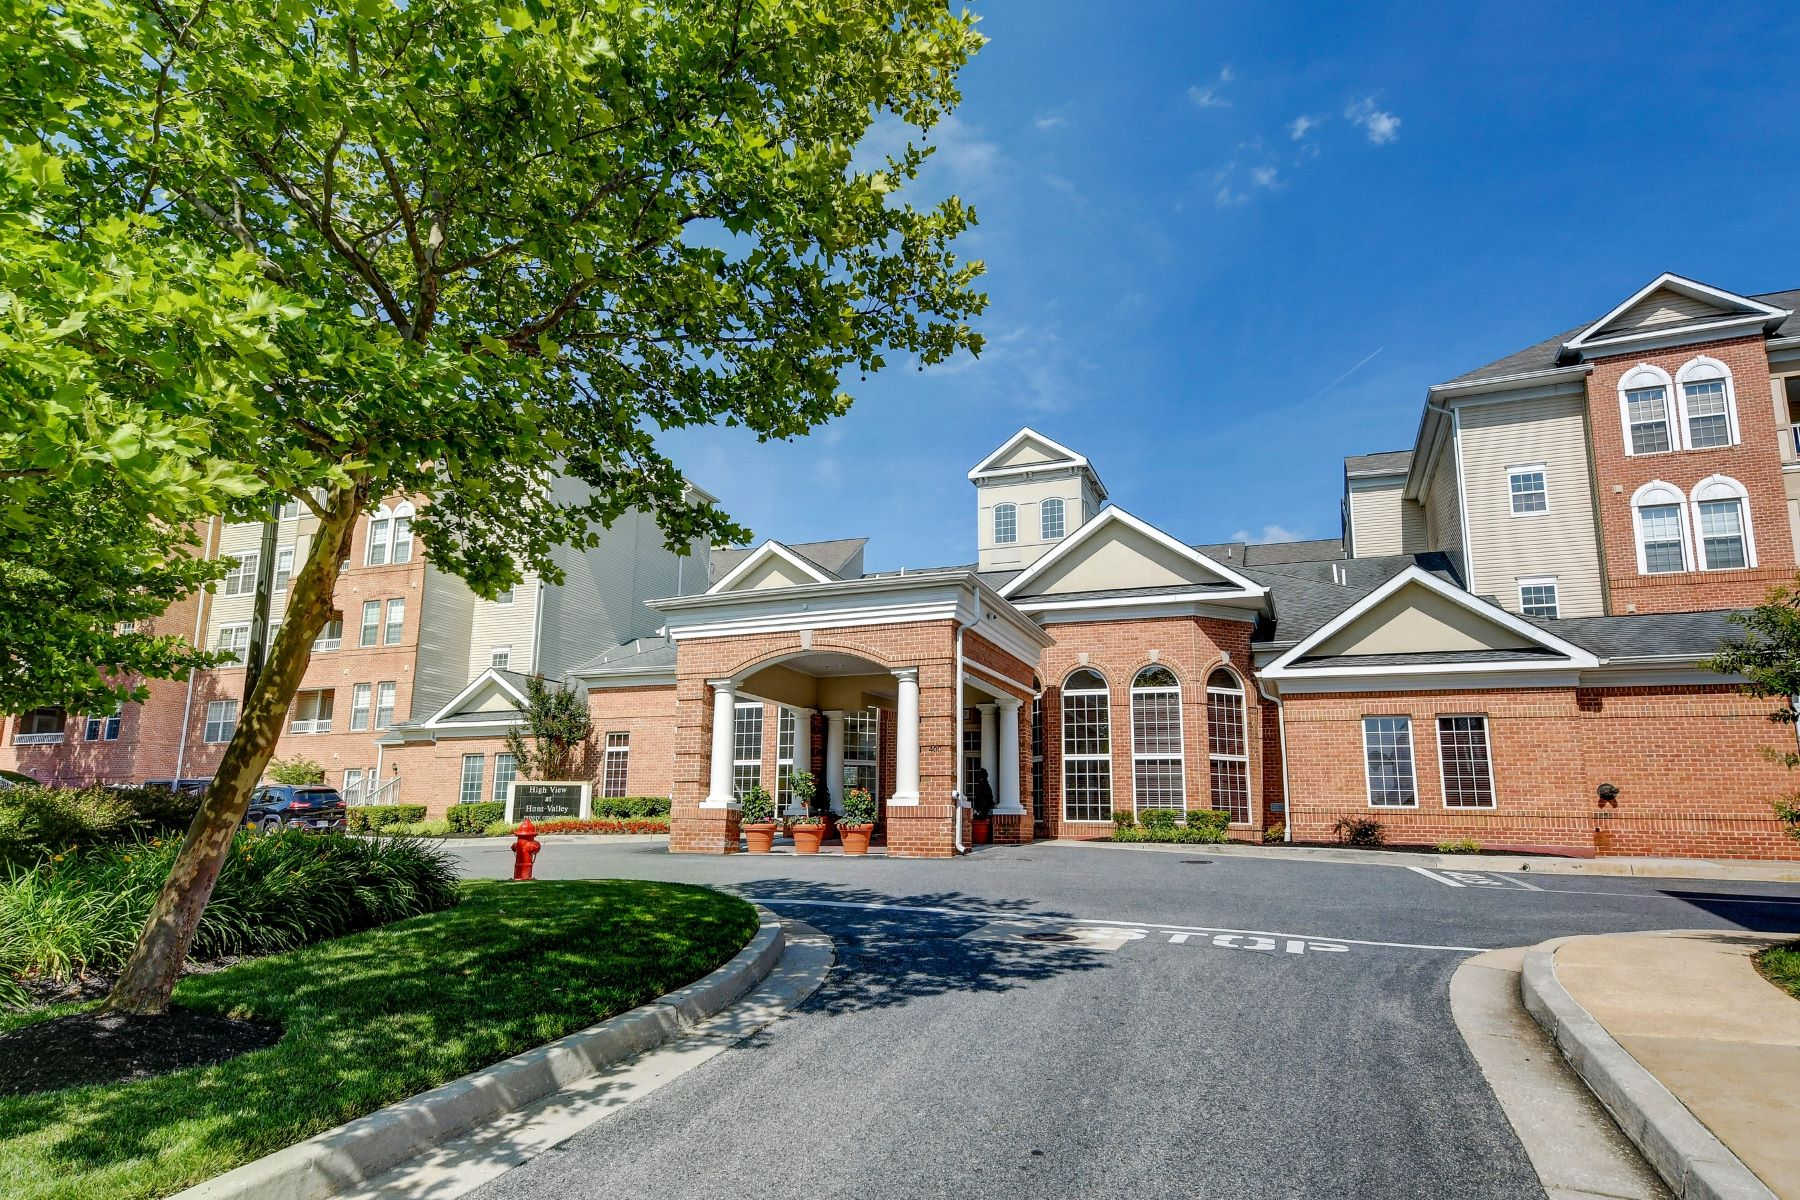 Condominiums for Sale at High View at Hunt Valley 400 Symphony Circle #222, Cockeysville, Maryland 21030 United States